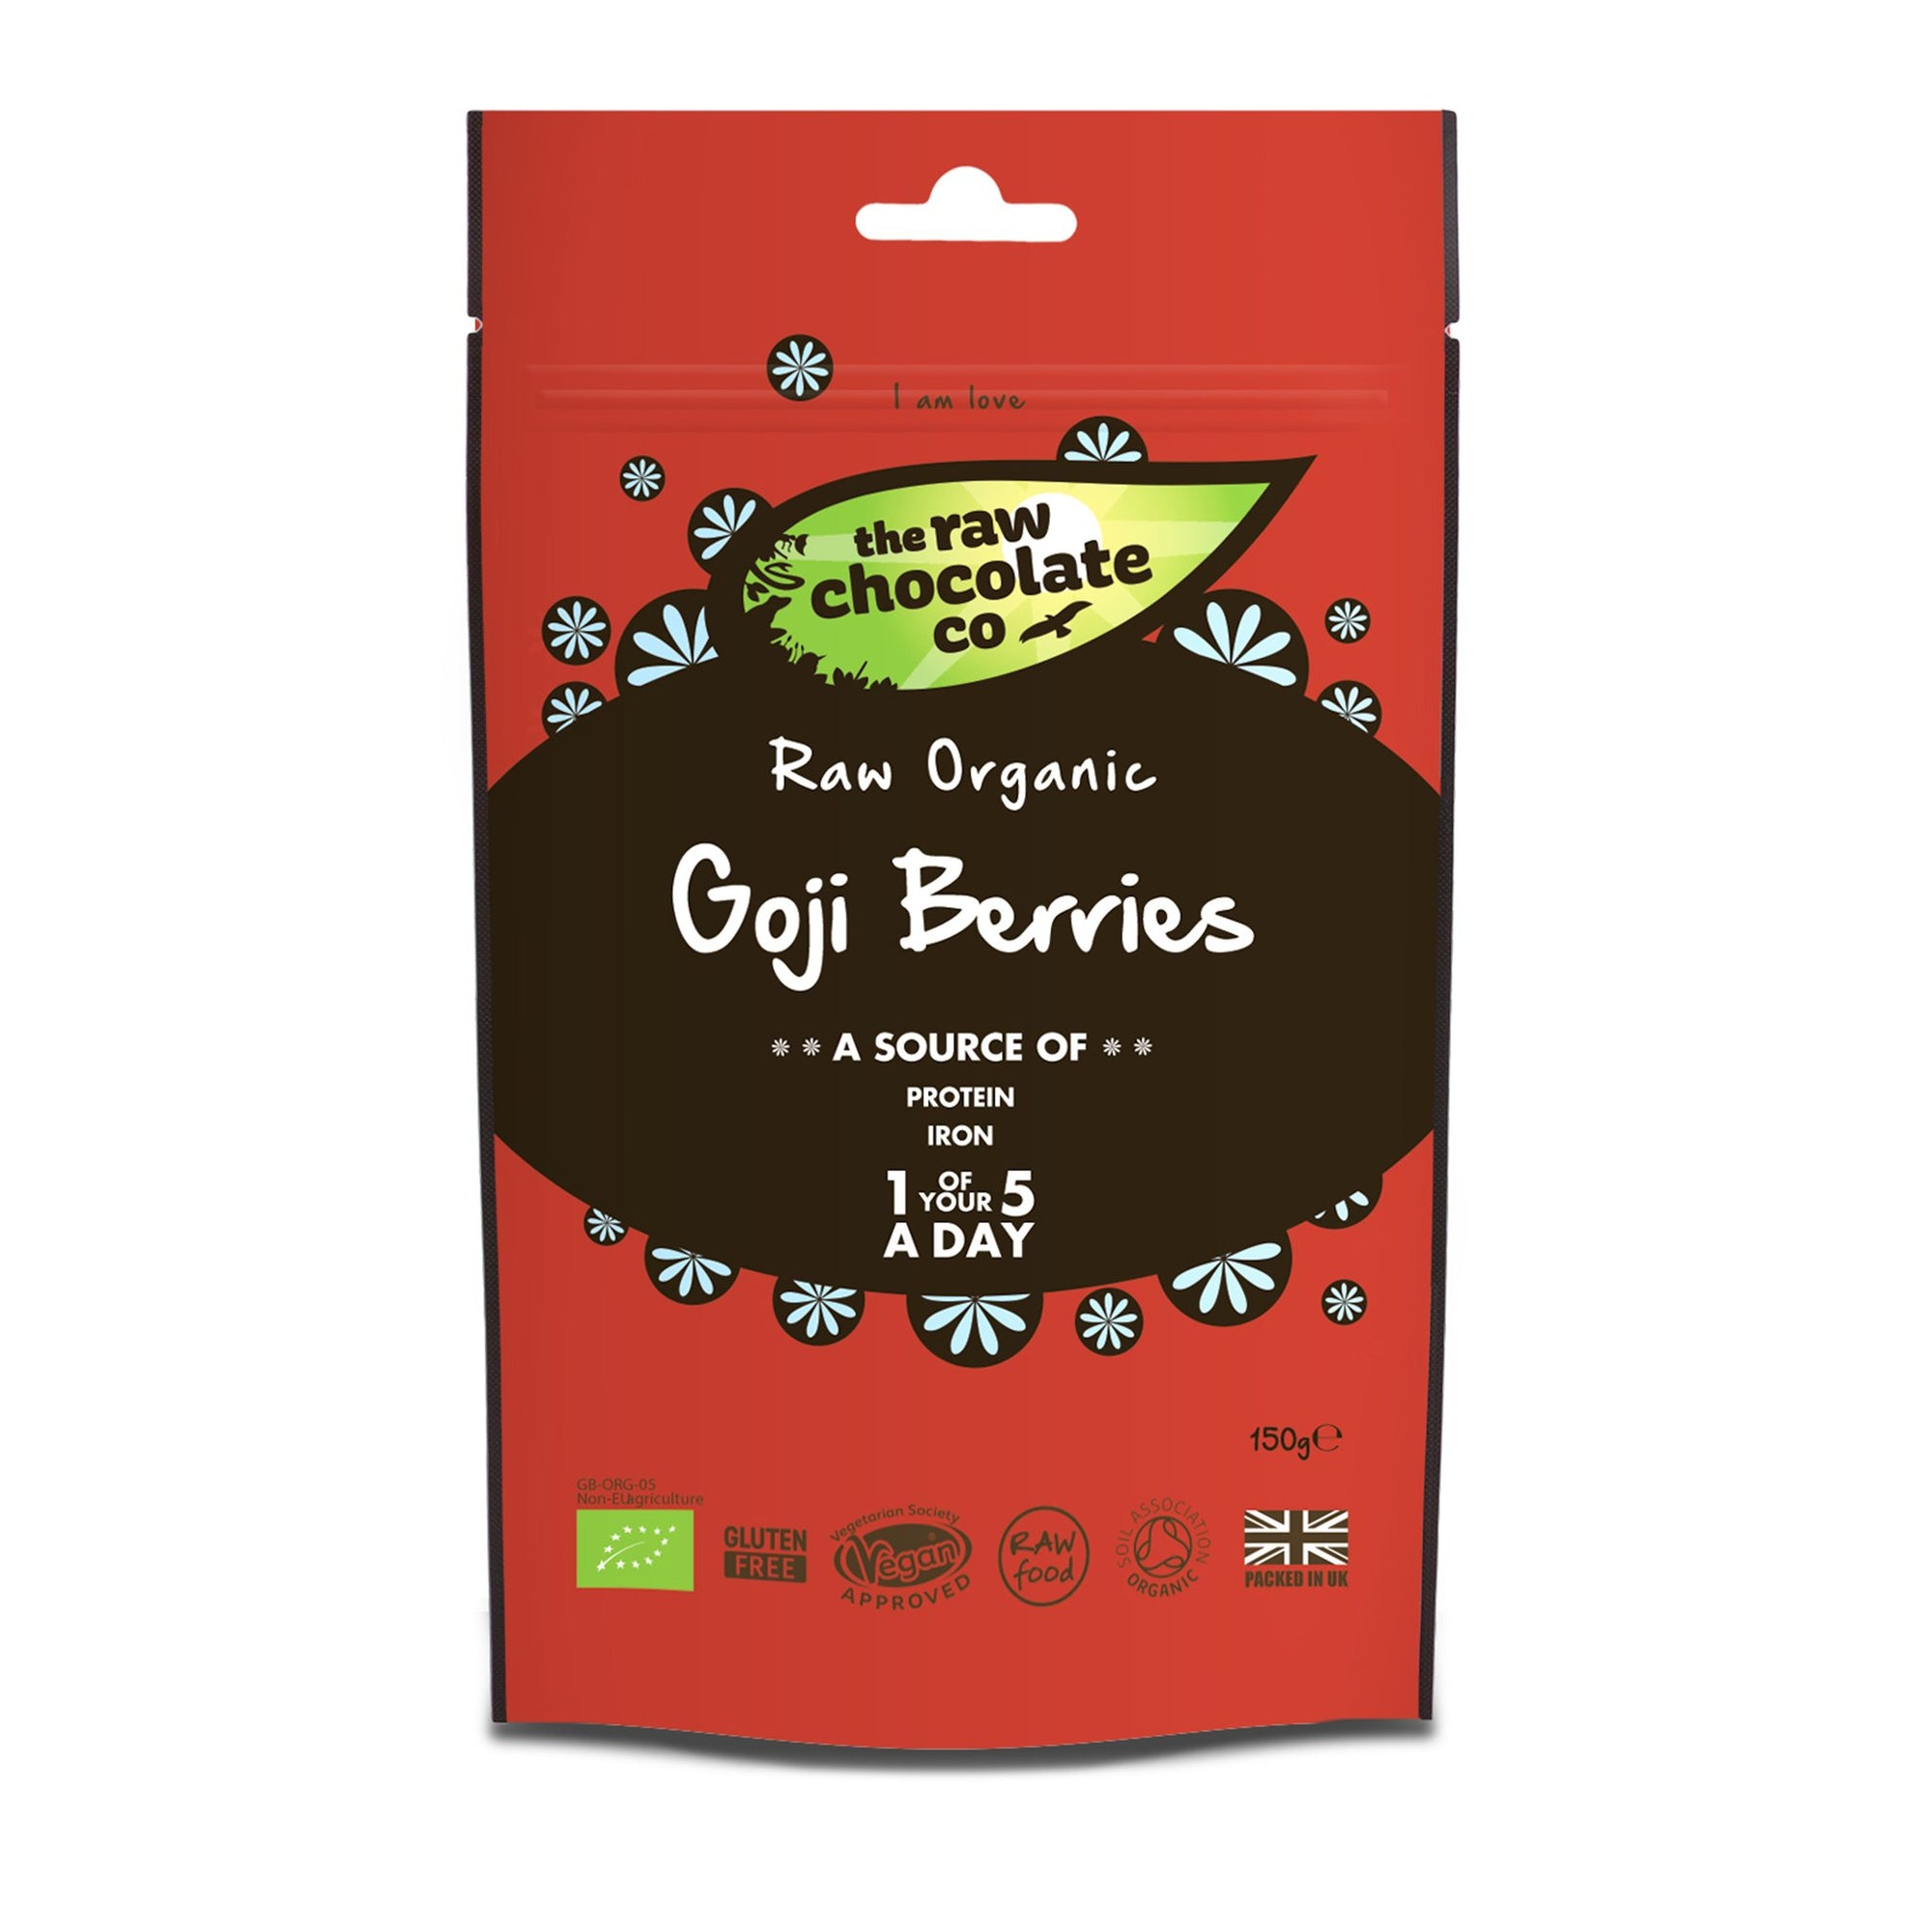 Raw Goji Berries - The Raw Chocolate Company